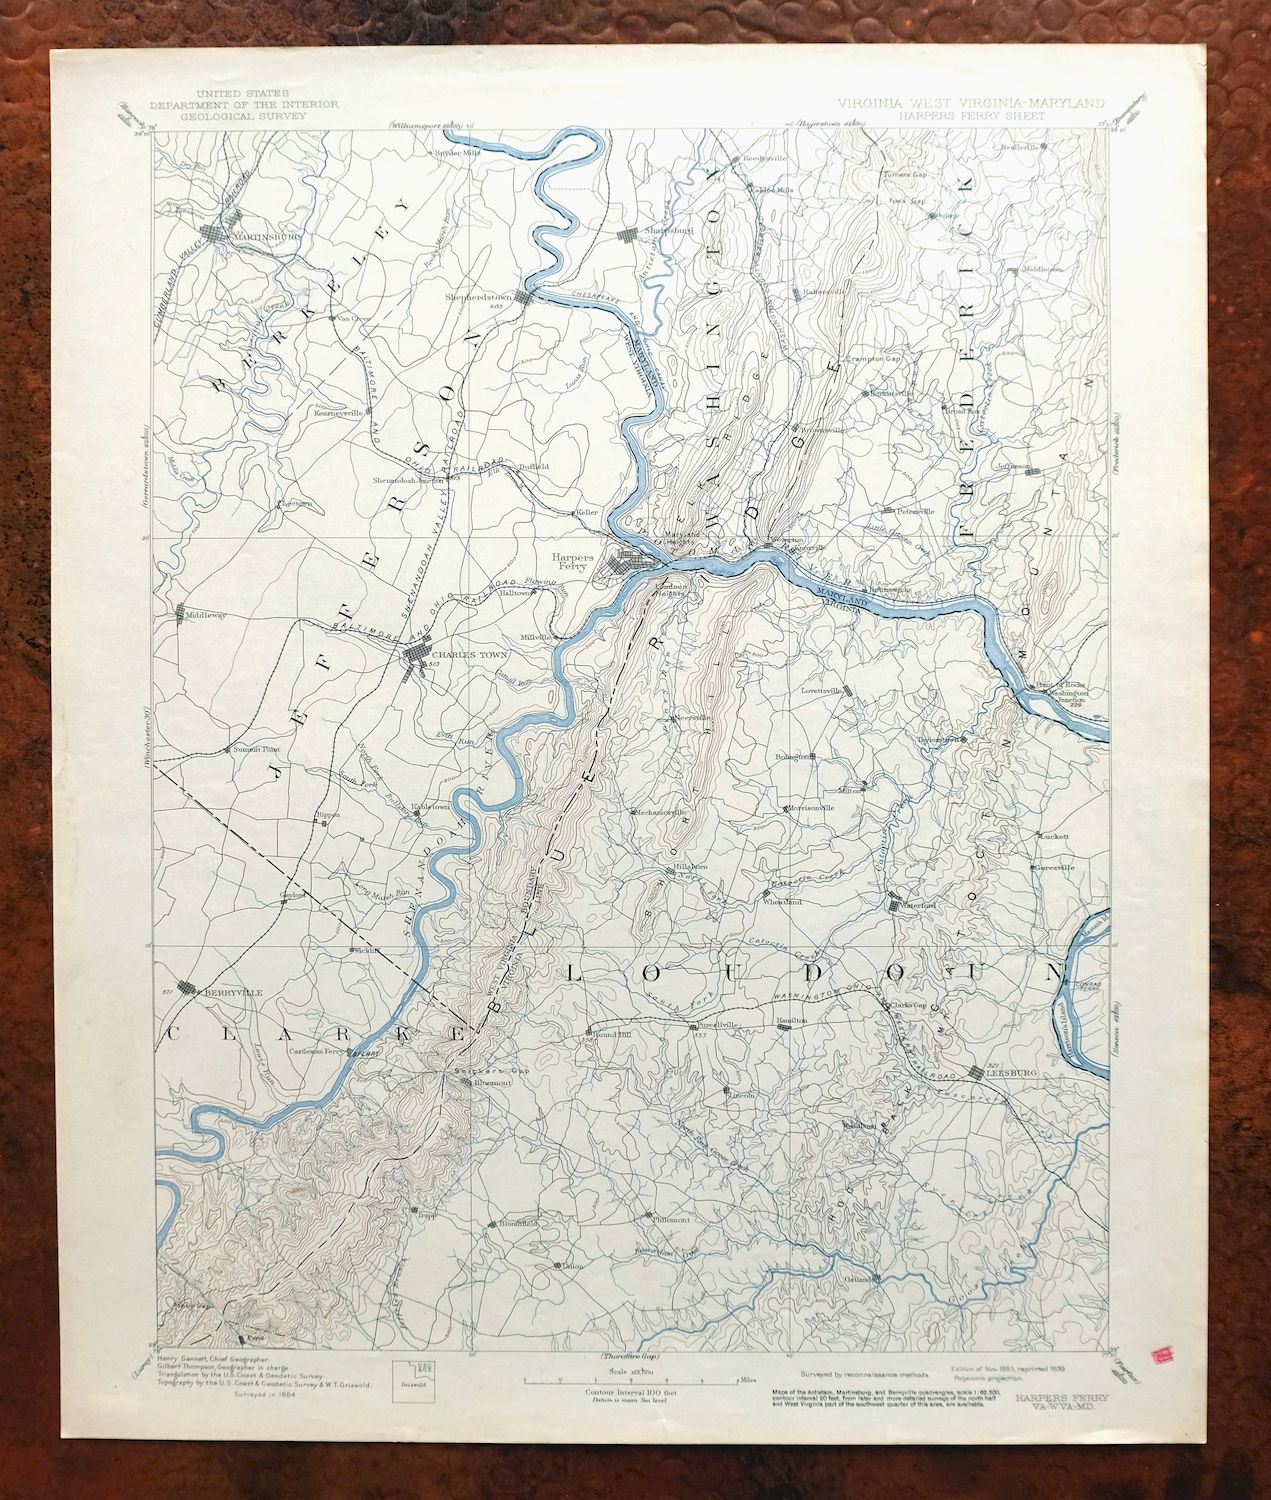 Harpers Ferry Virginia Maryland Vintage Usgs Topo Map 1893 Leesburg